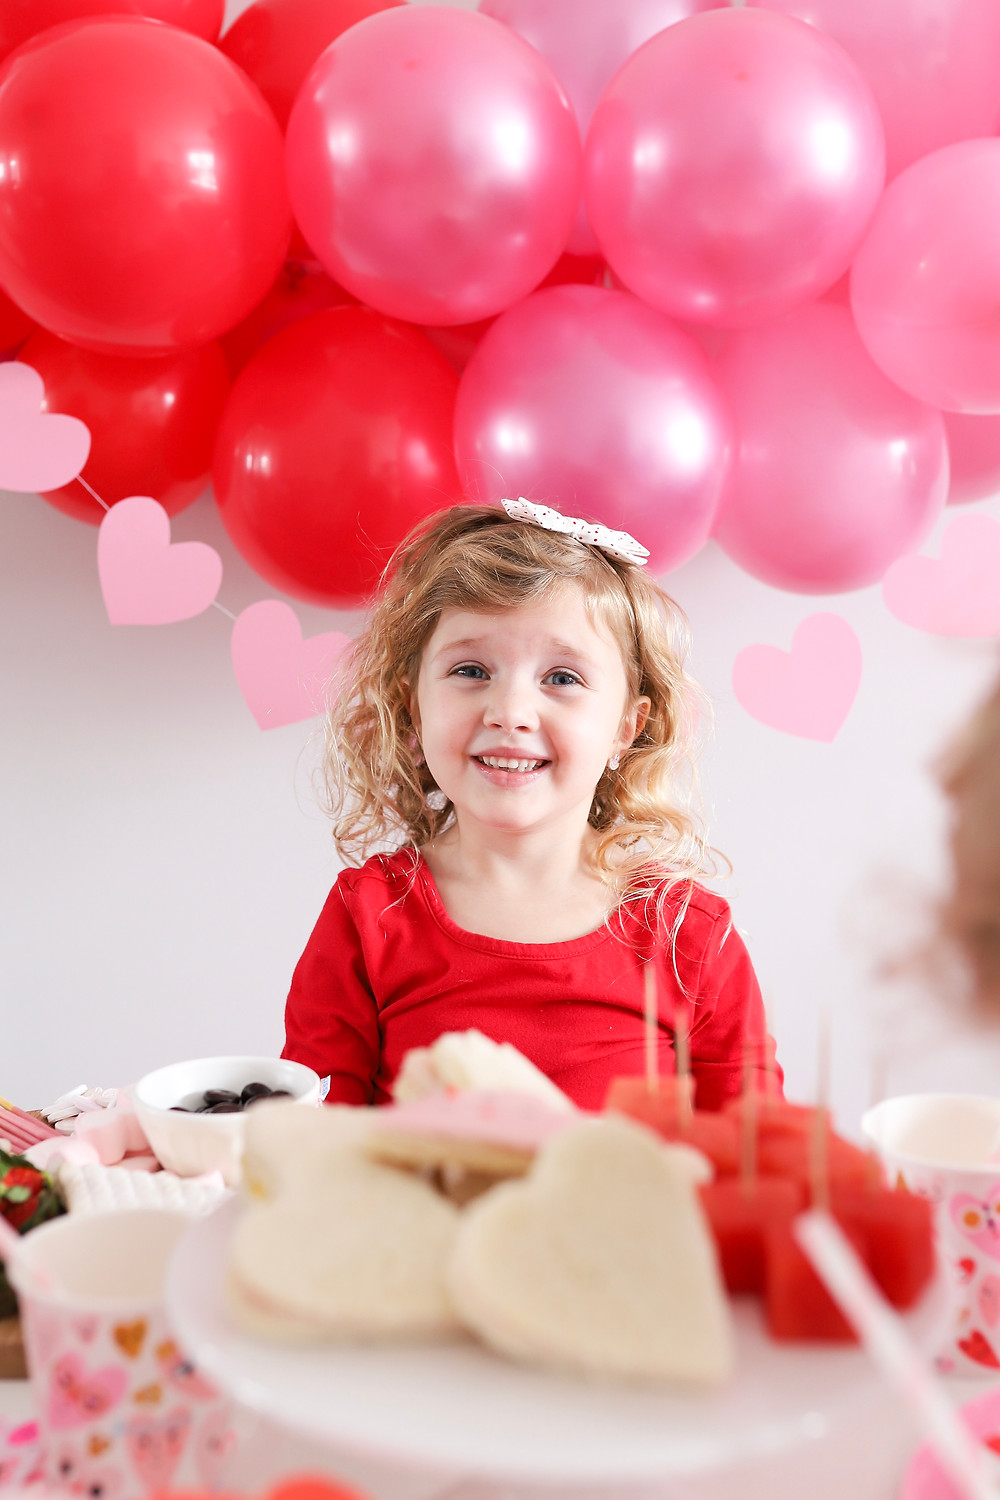 A little girl smiling at the camera at a Valentine's Day party.